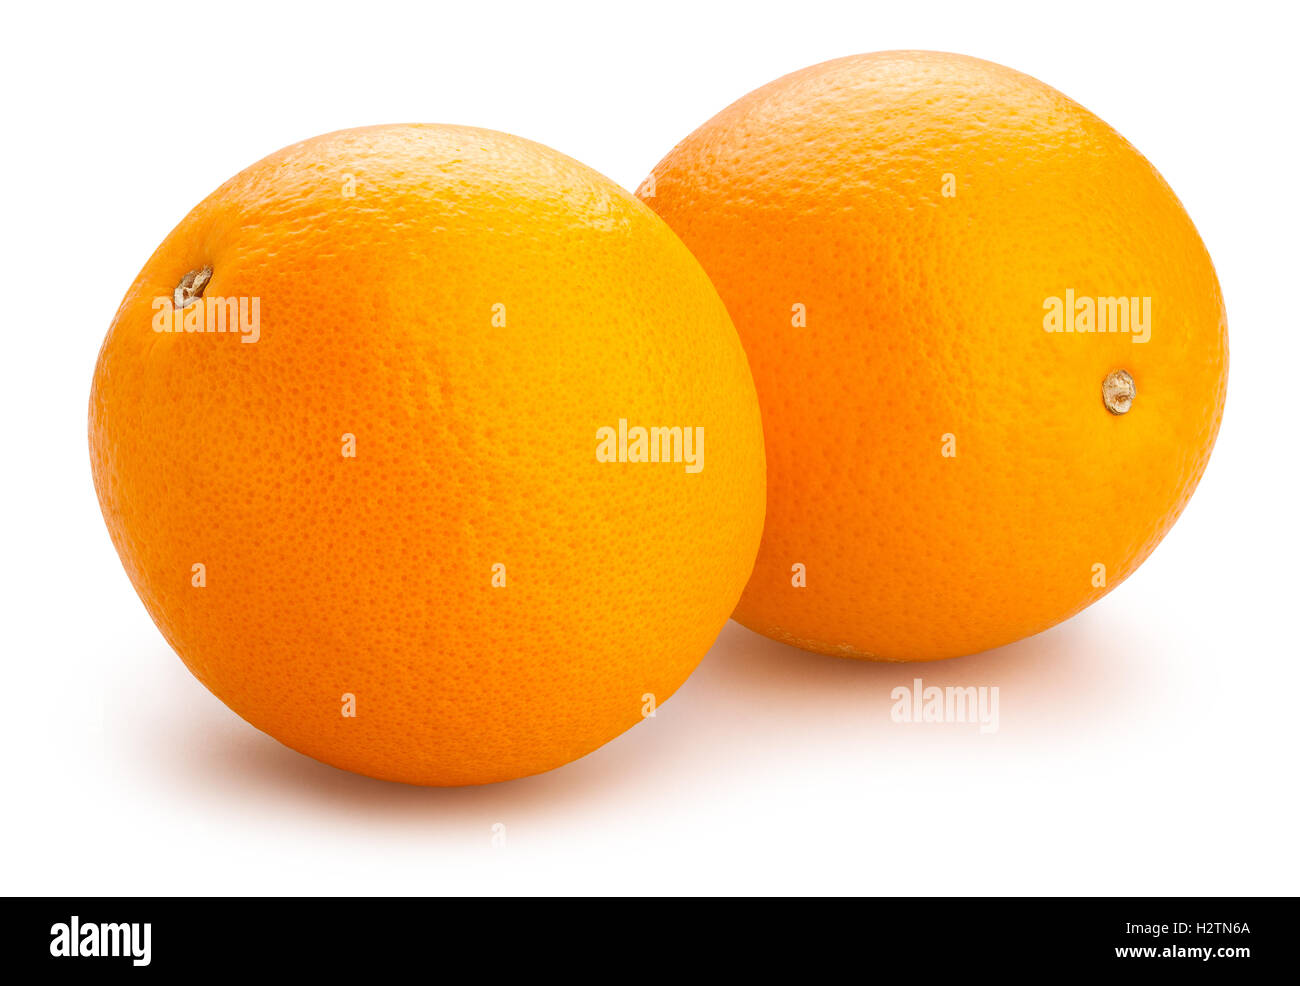 oranges isolated - Stock Image